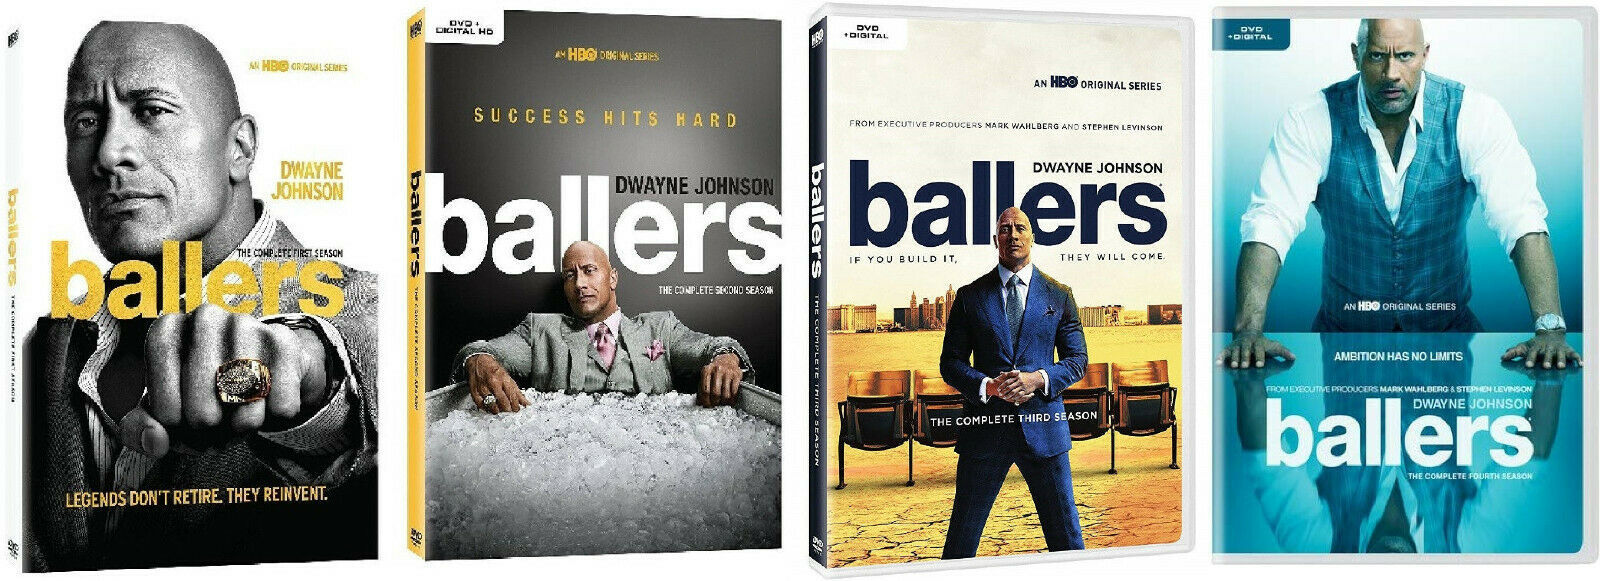 Ballers - The Complete Series Seasons 1 2 3 & 4 [DVD Sets New] The Rock